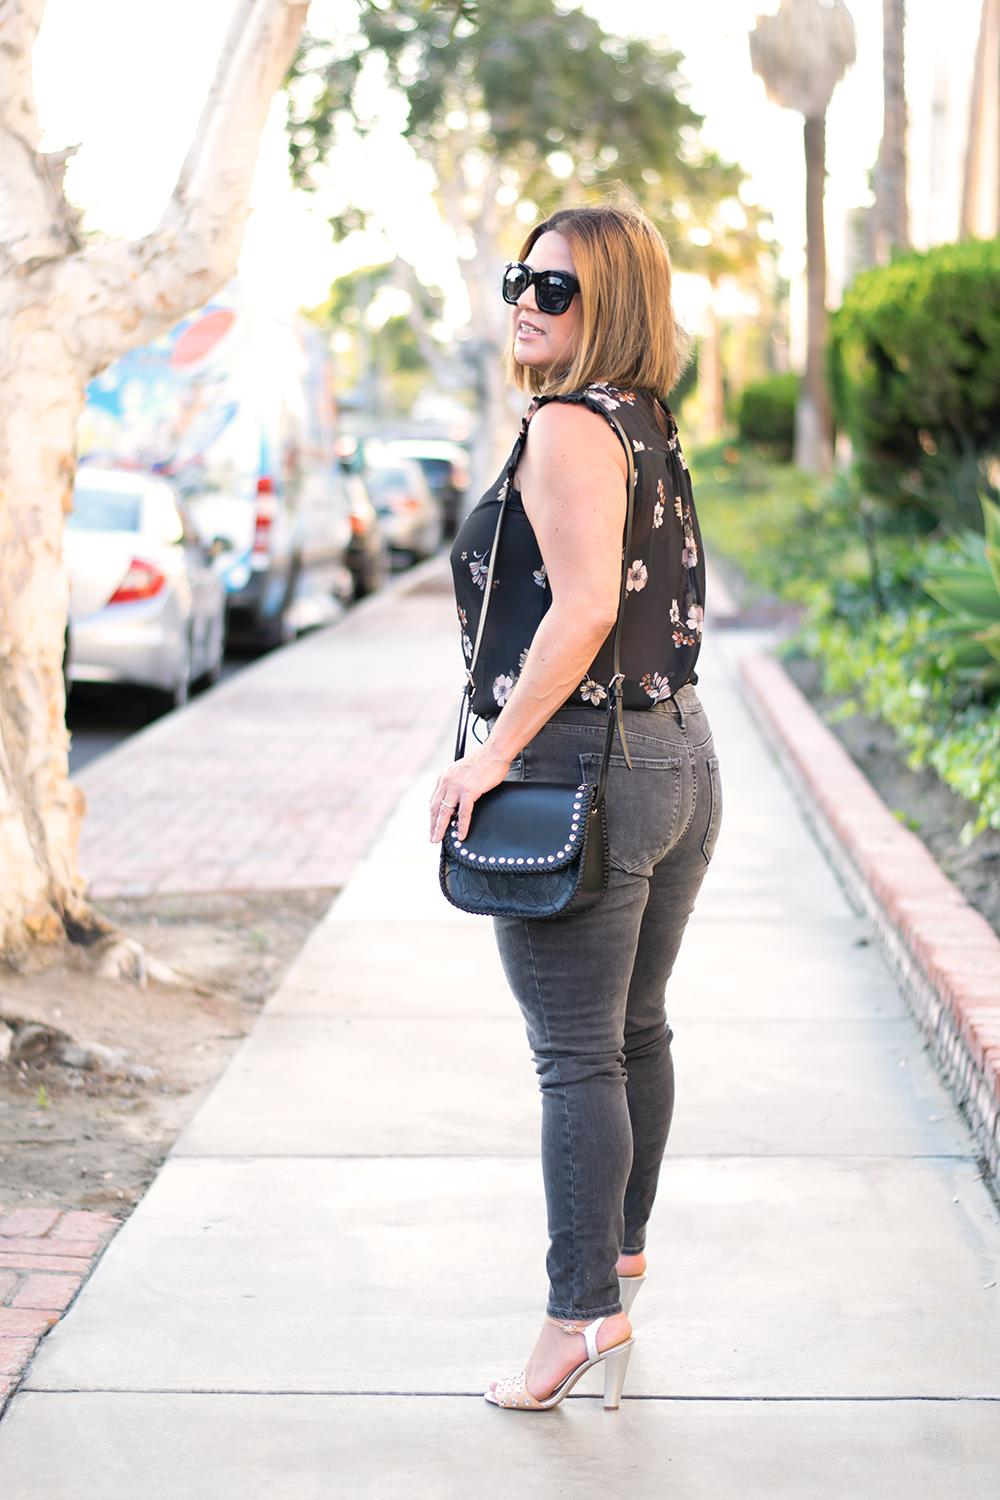 barefoot-in-la-casual-outfit-los-angeles-fashion-street-style-blogger-personal-stylist-0619